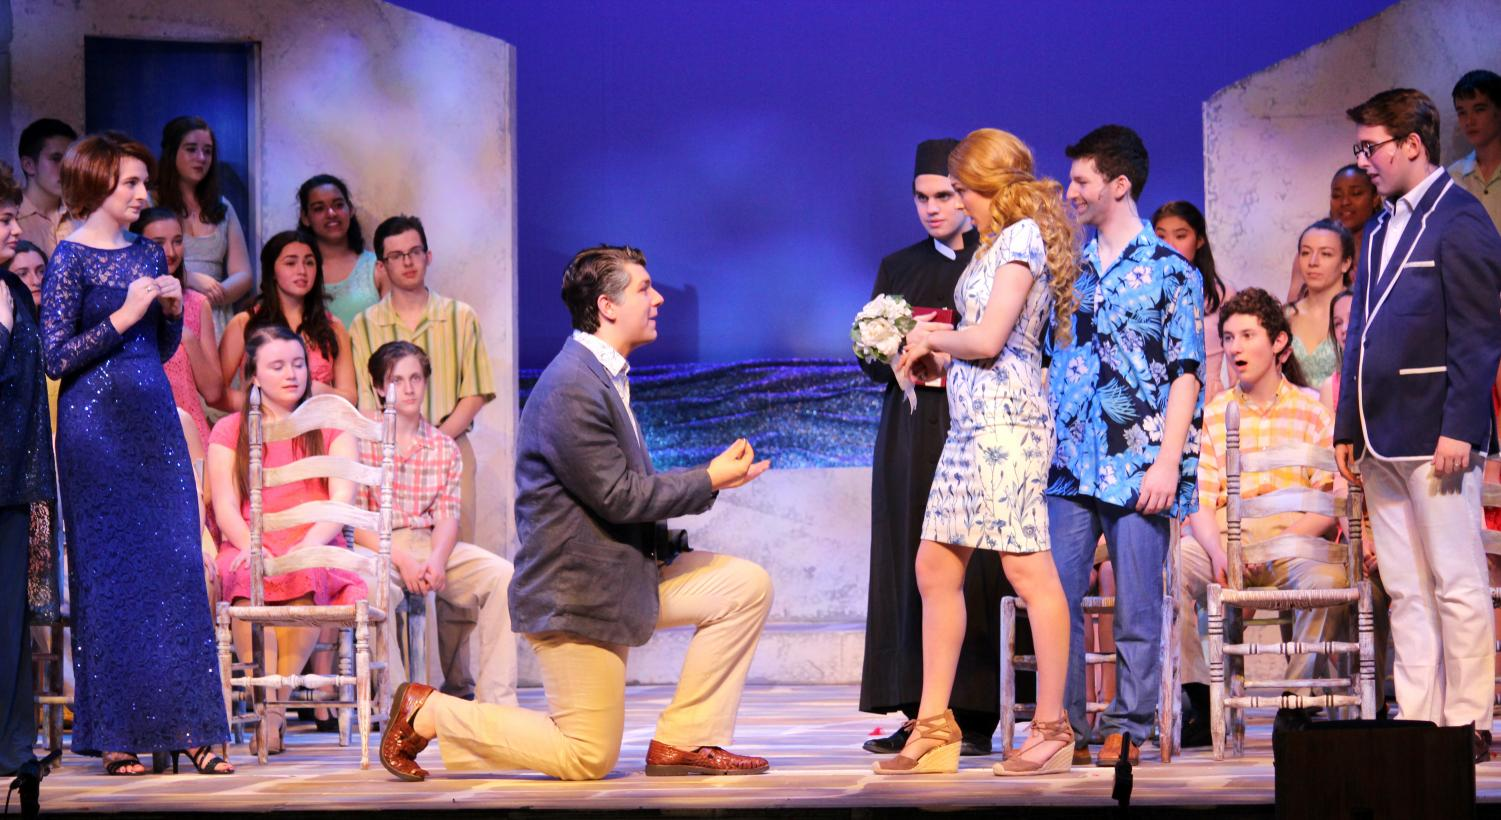 Sam Rodd (kneeling) and Maggie Solimine (with bouquet) were both selected in the top 50 performers in the Greater New York Area for the Roger Rees Awards.